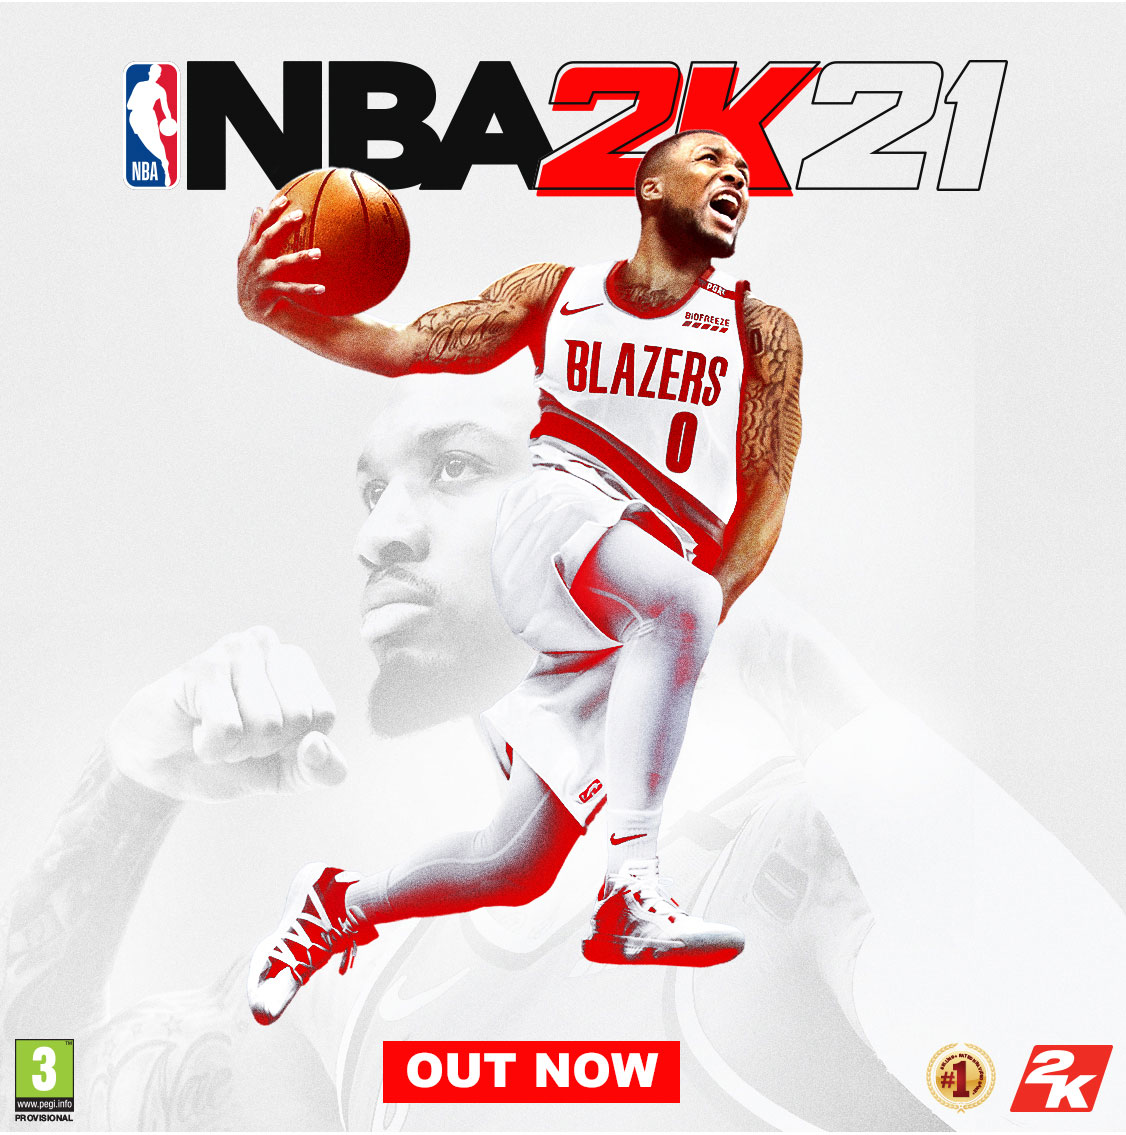 NBA 2K21 outnow